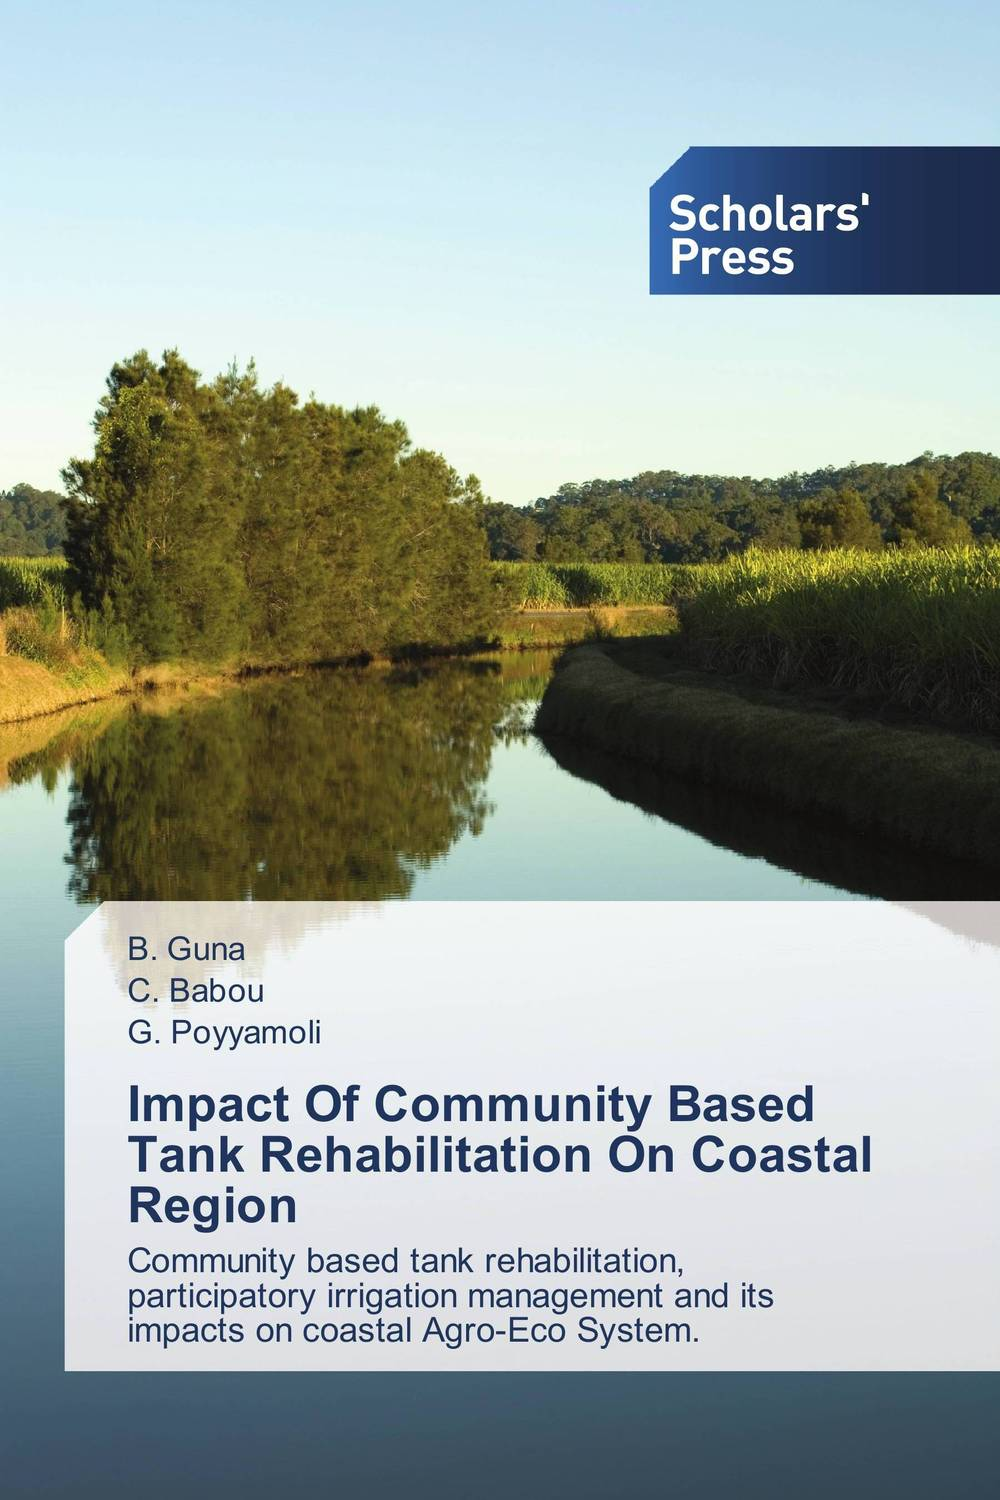 все цены на Impact Of Community Based Tank Rehabilitation On Coastal Region онлайн